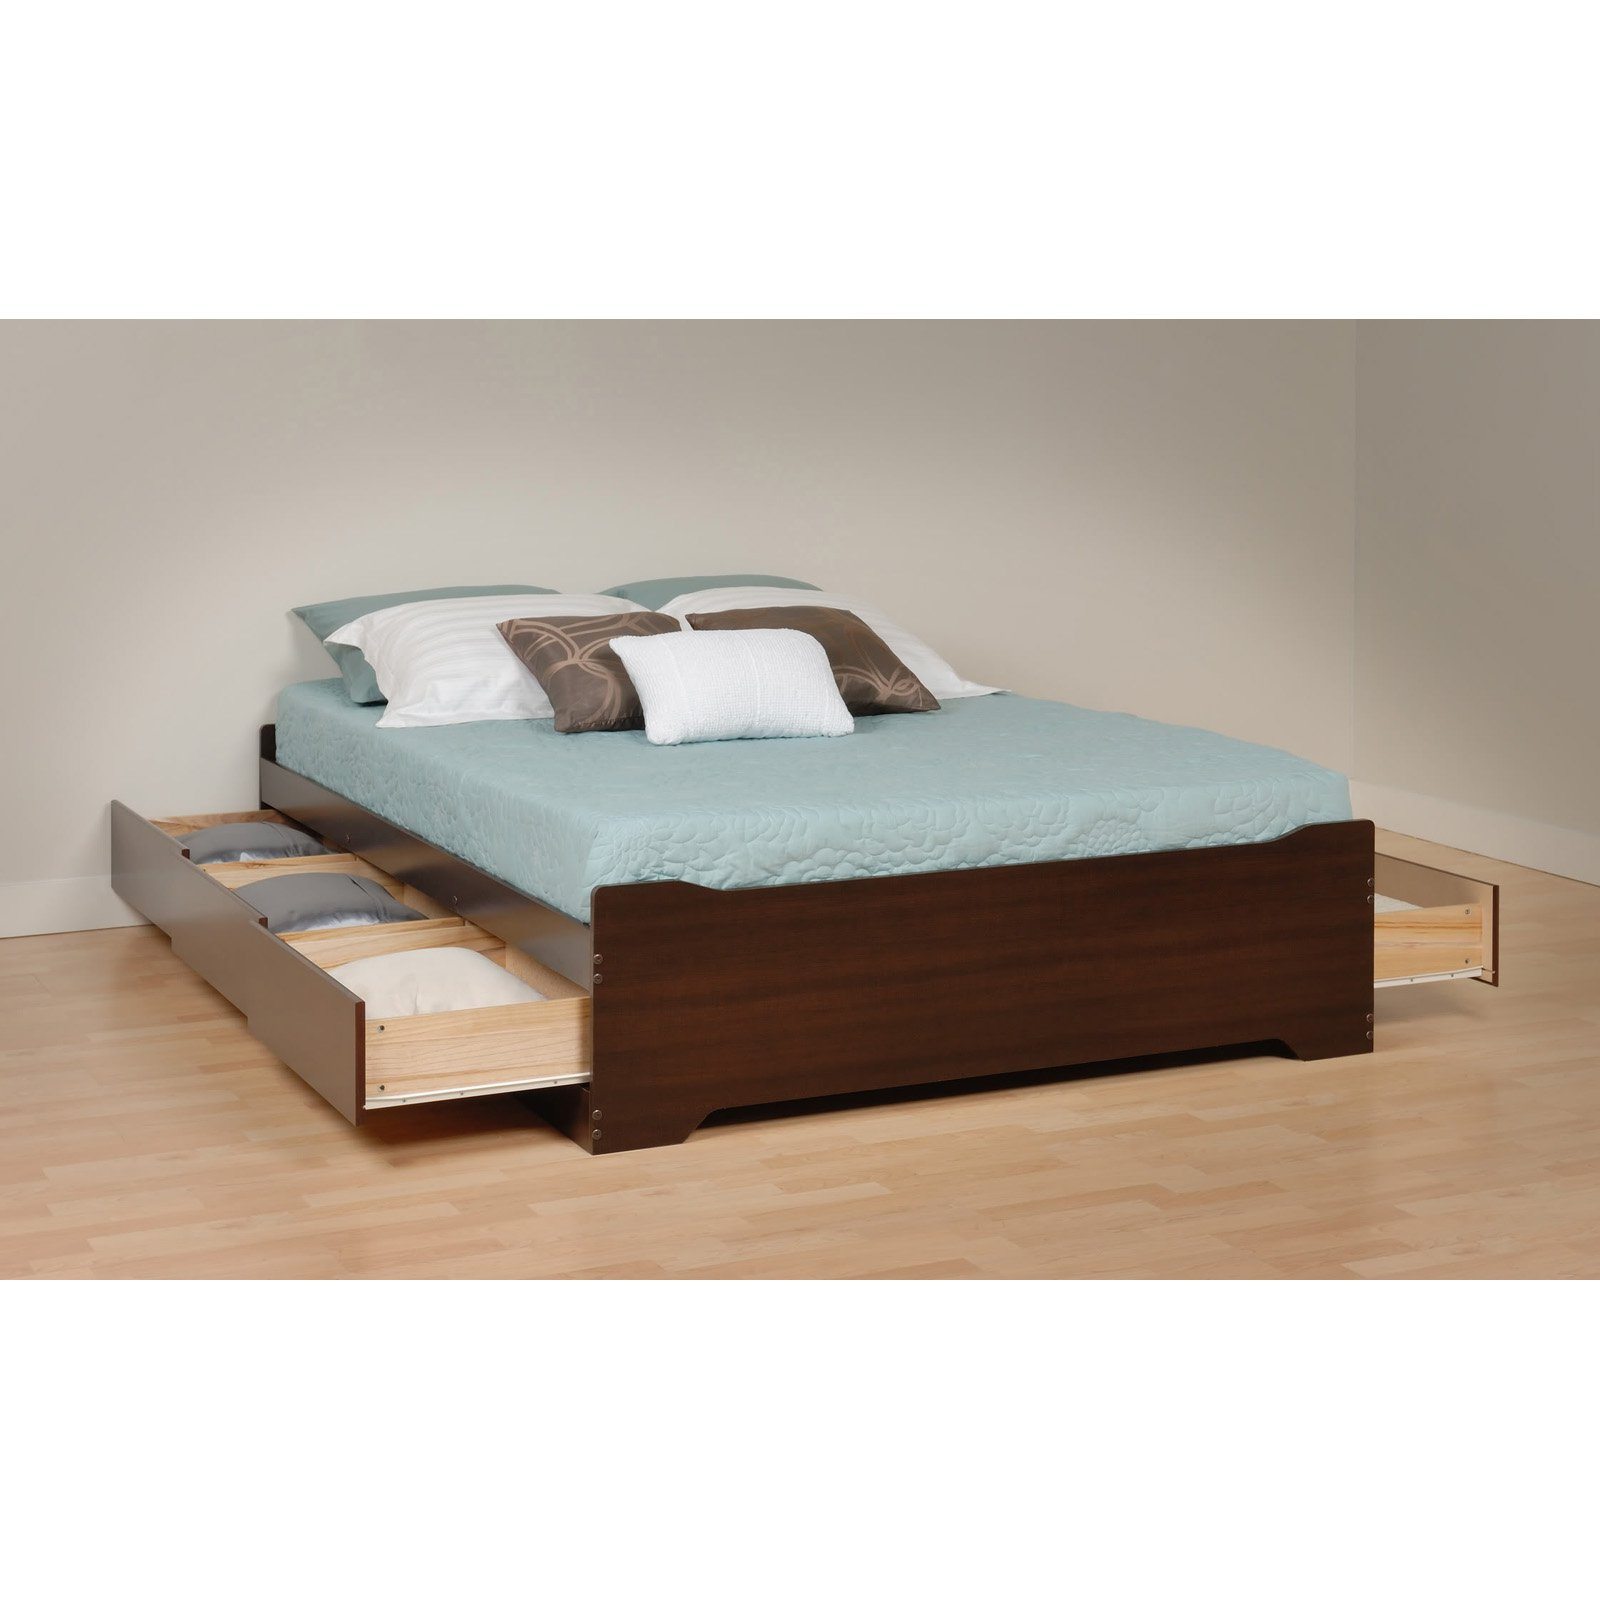 Coal Harbor Full Mates Platform Storage Bed with 6 Drawers, Espresso (Box 2 of 3)